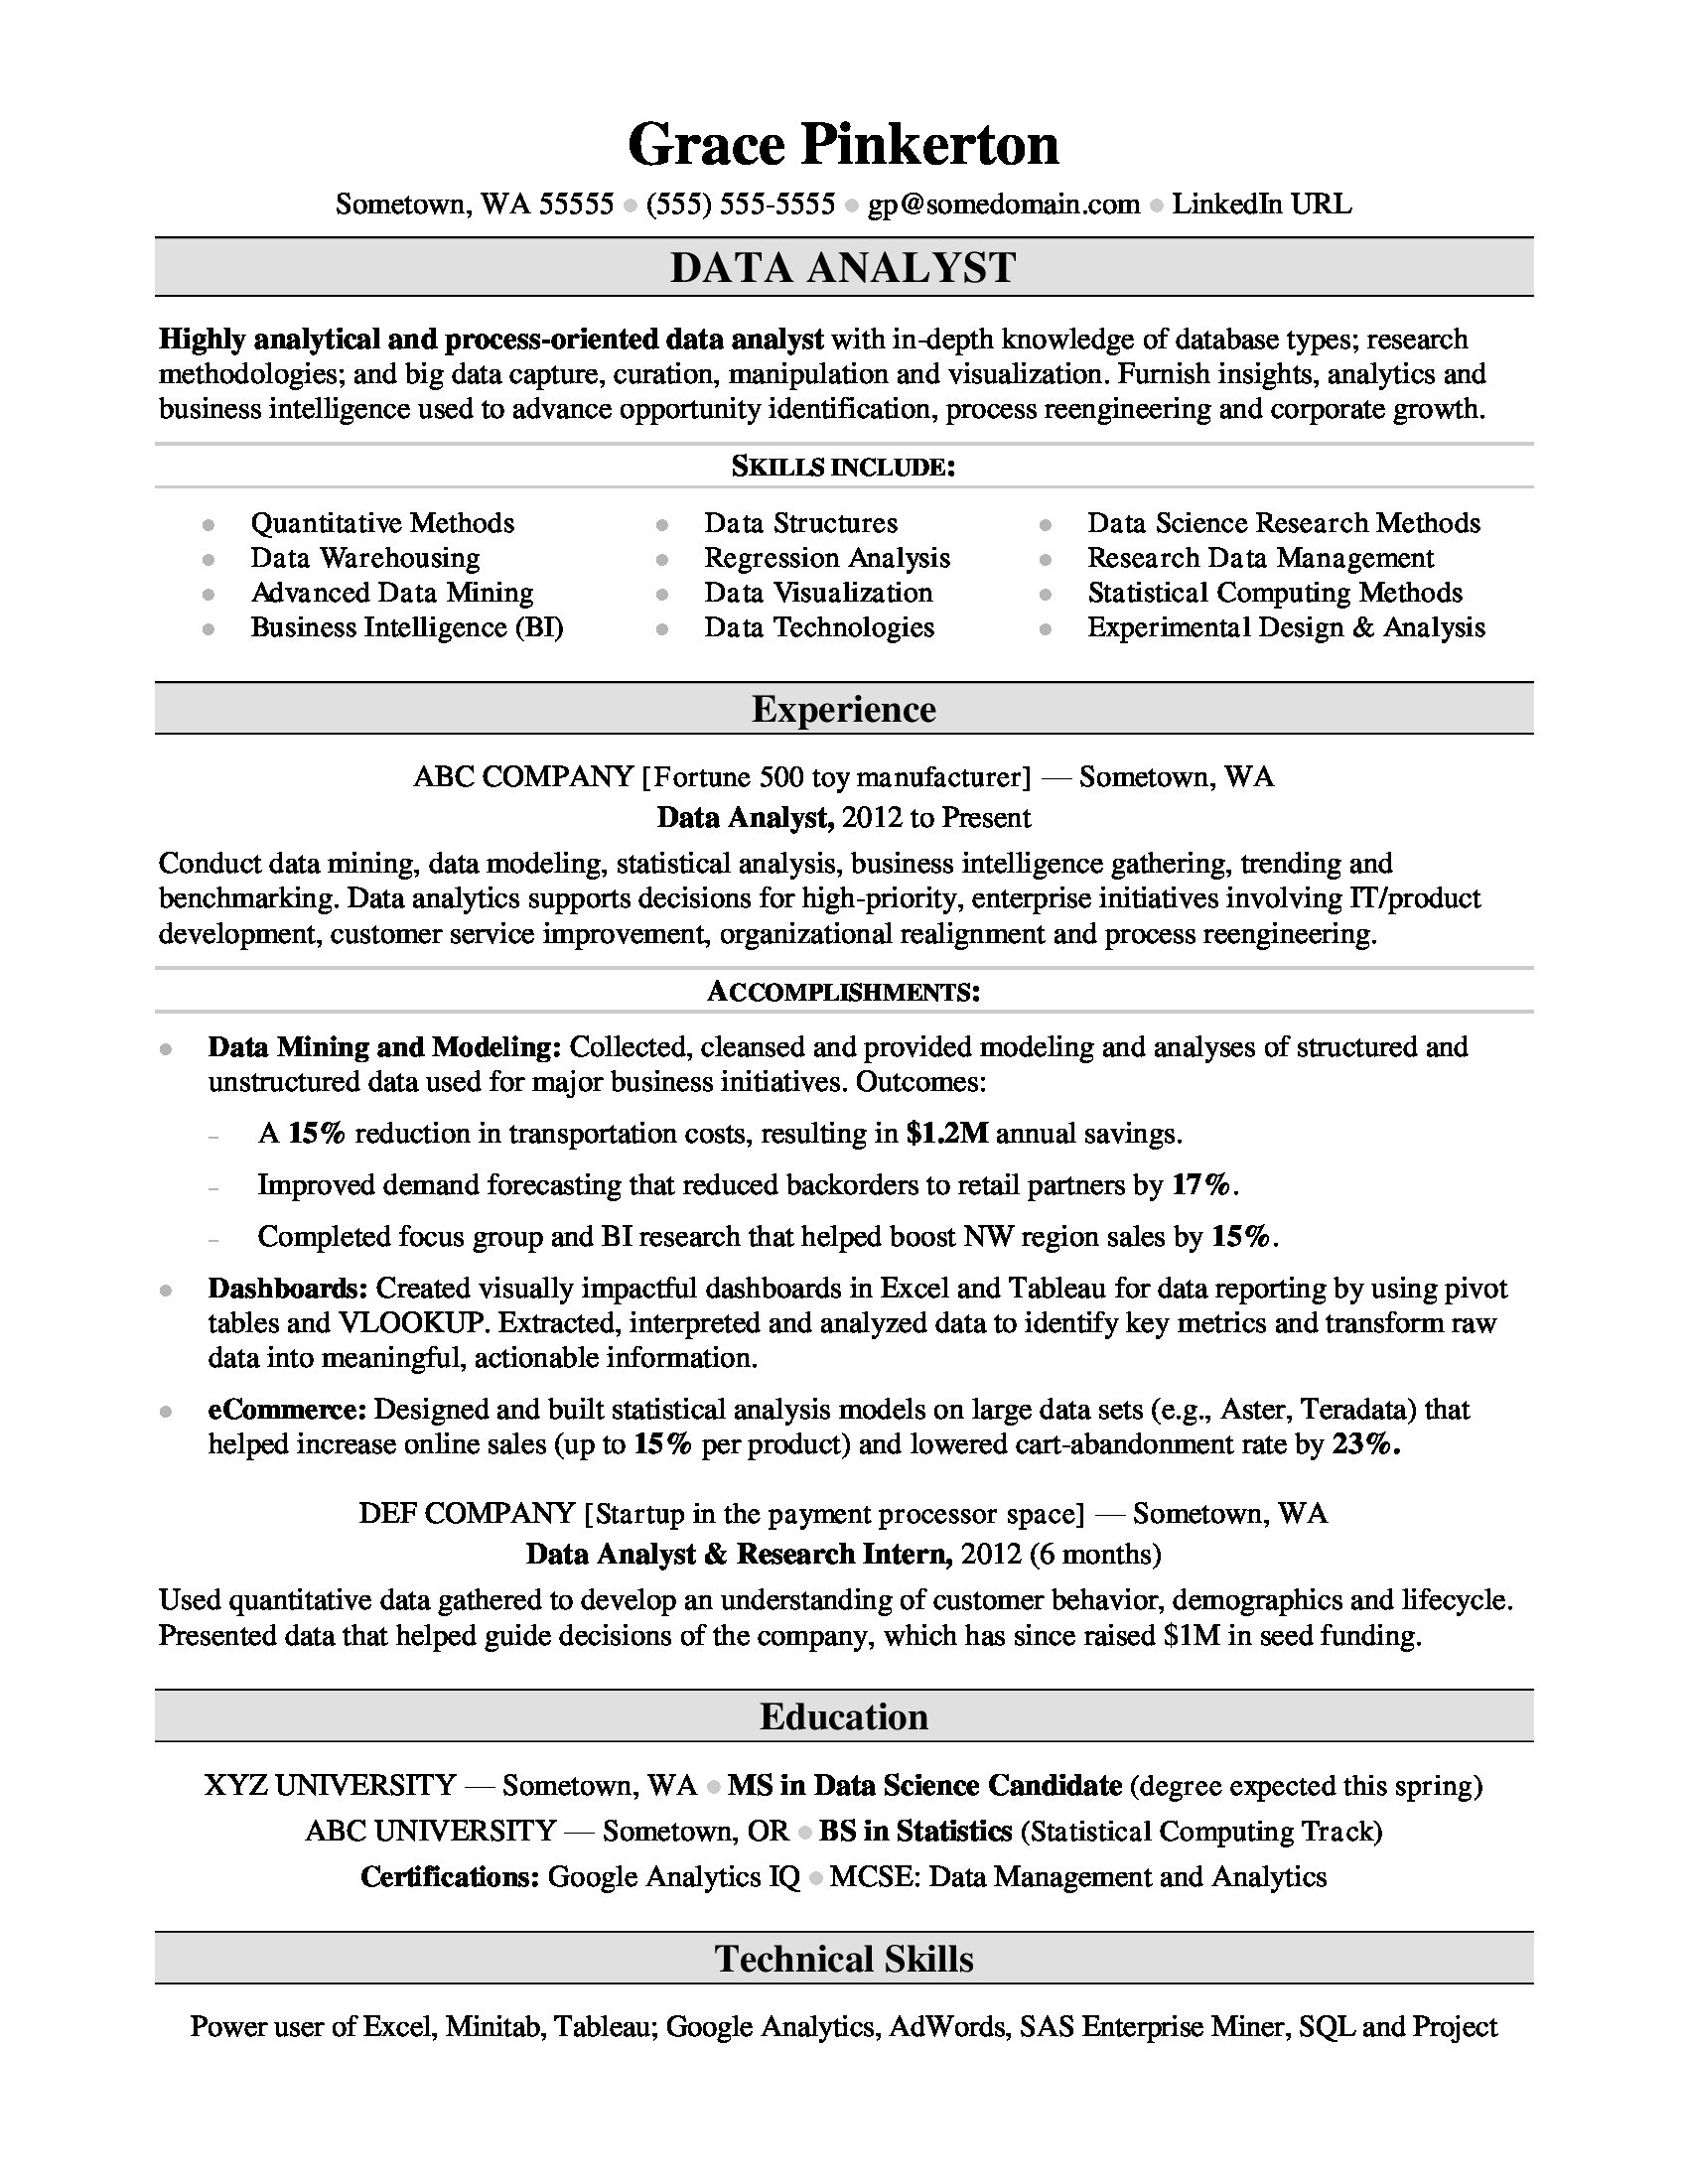 data analyst resume sample - Data Analyst Sample Resume